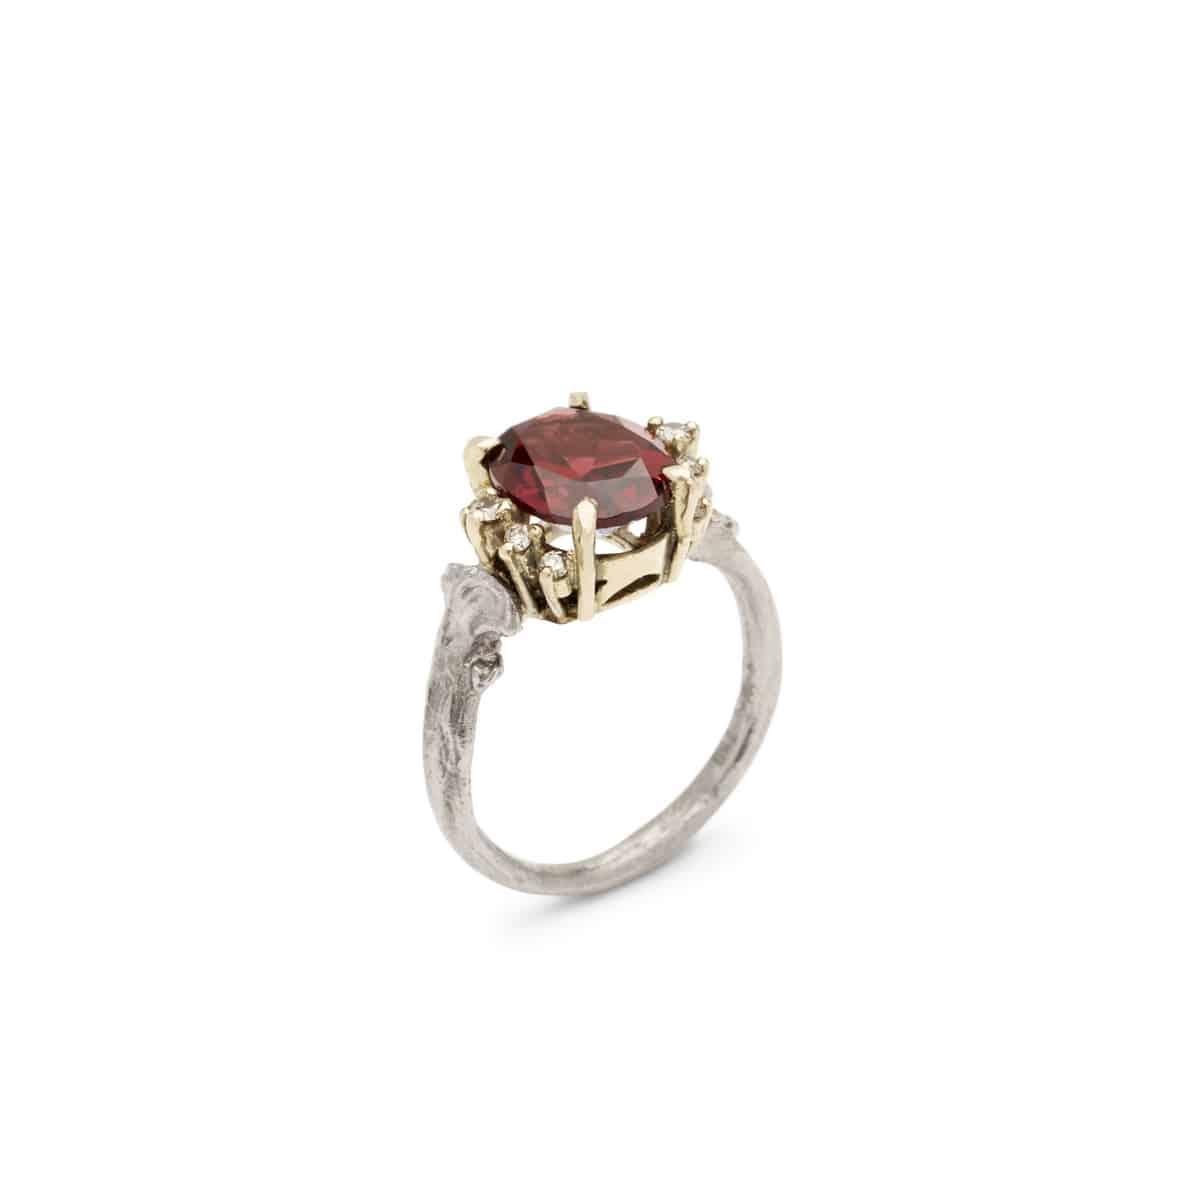 Julia deVille, Bone Ring Majesty, 2016, 18ct white & yellow gold, garnet, cognac diamonds, dimensions variable, Courtesy of the artist